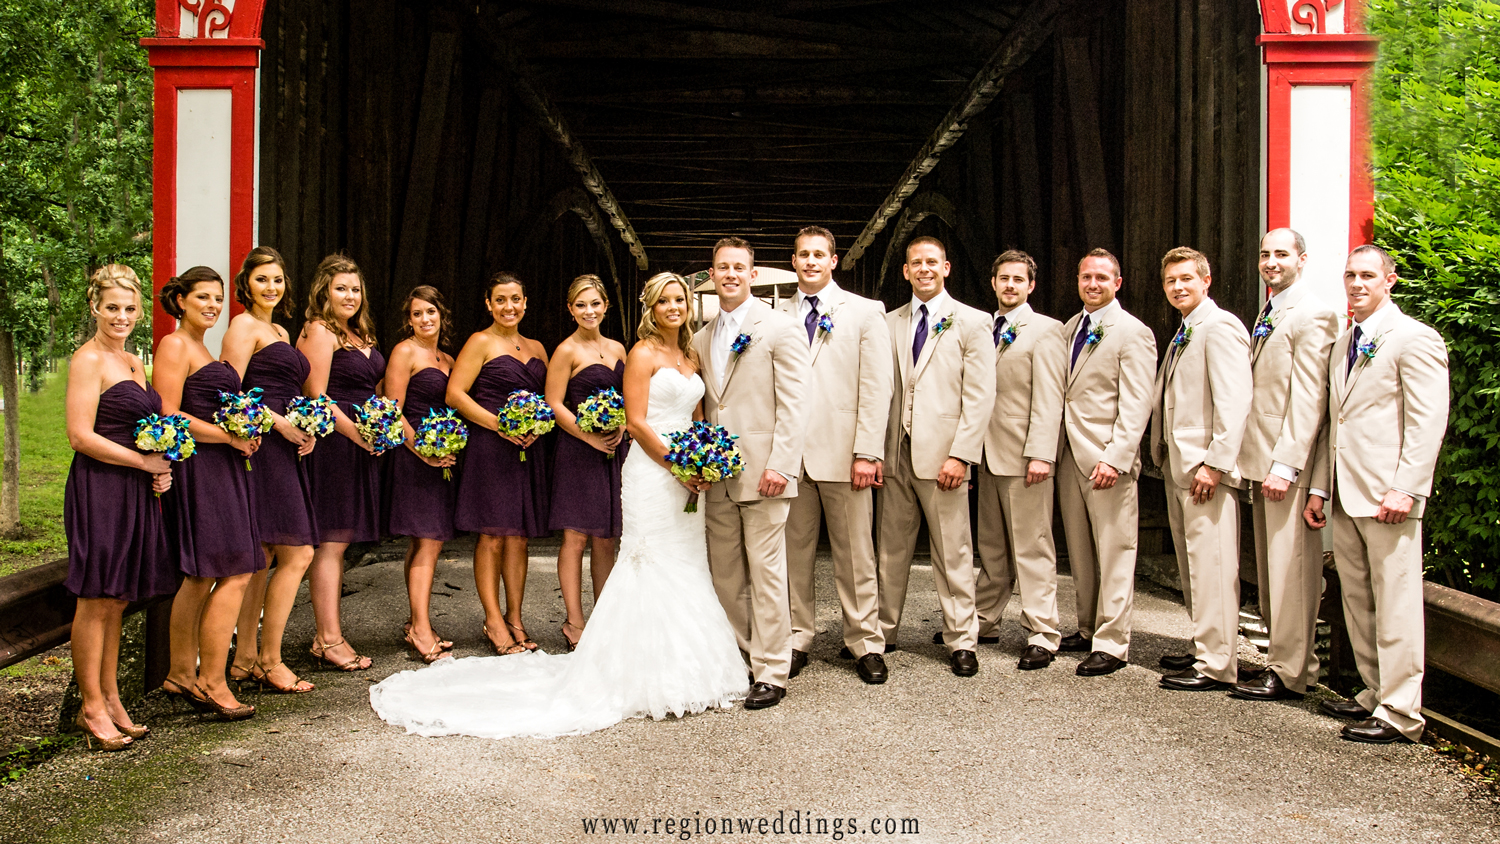 The entire wedding party has their photo taken in front of the the Old Covered Bridge at the Lake County Fairgrounds in Crown Point.